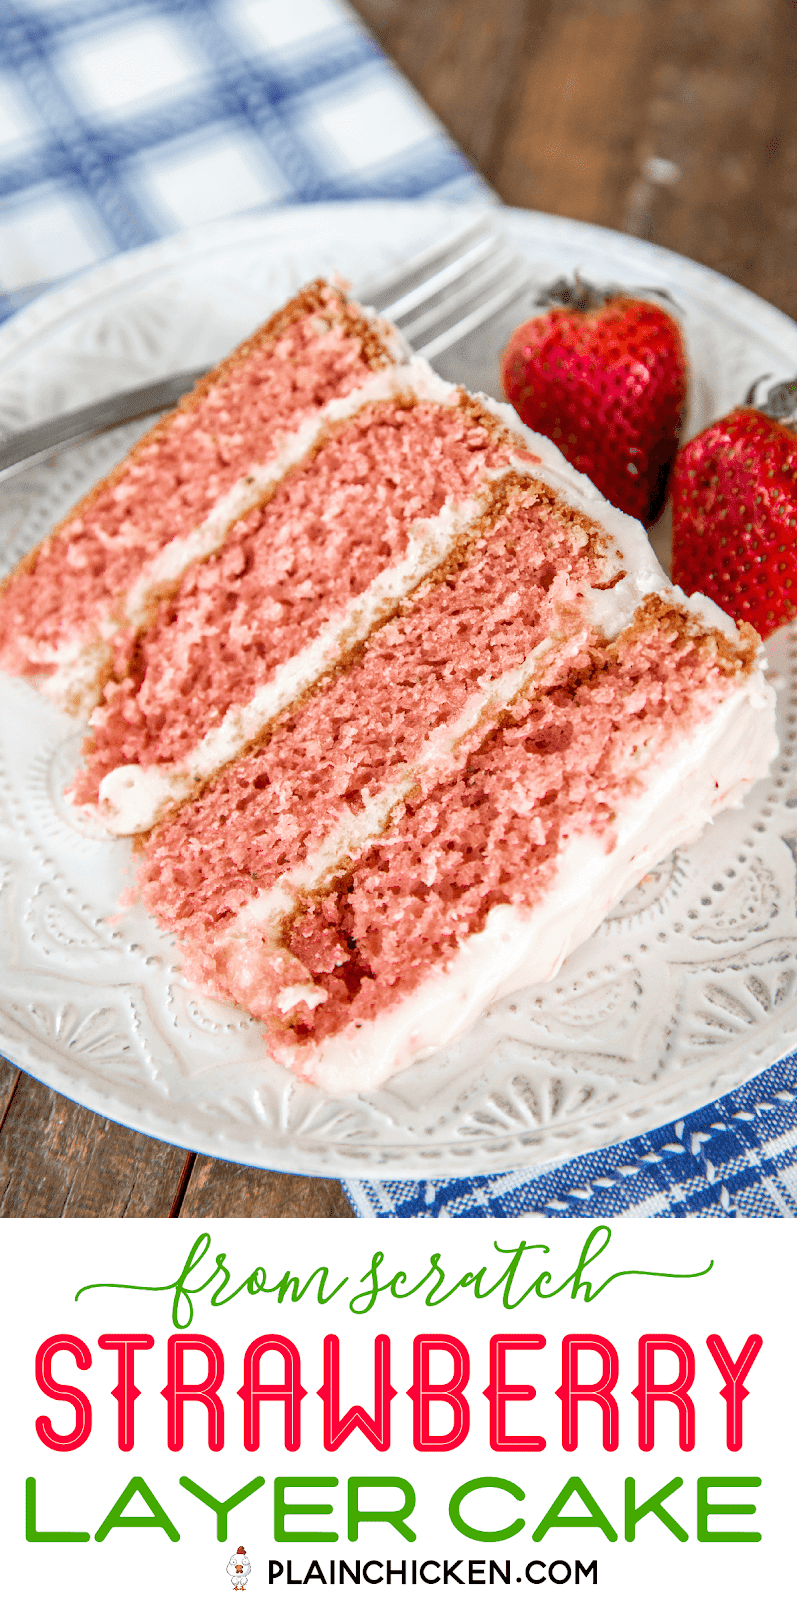 slice of strawberry layer cake on a plate